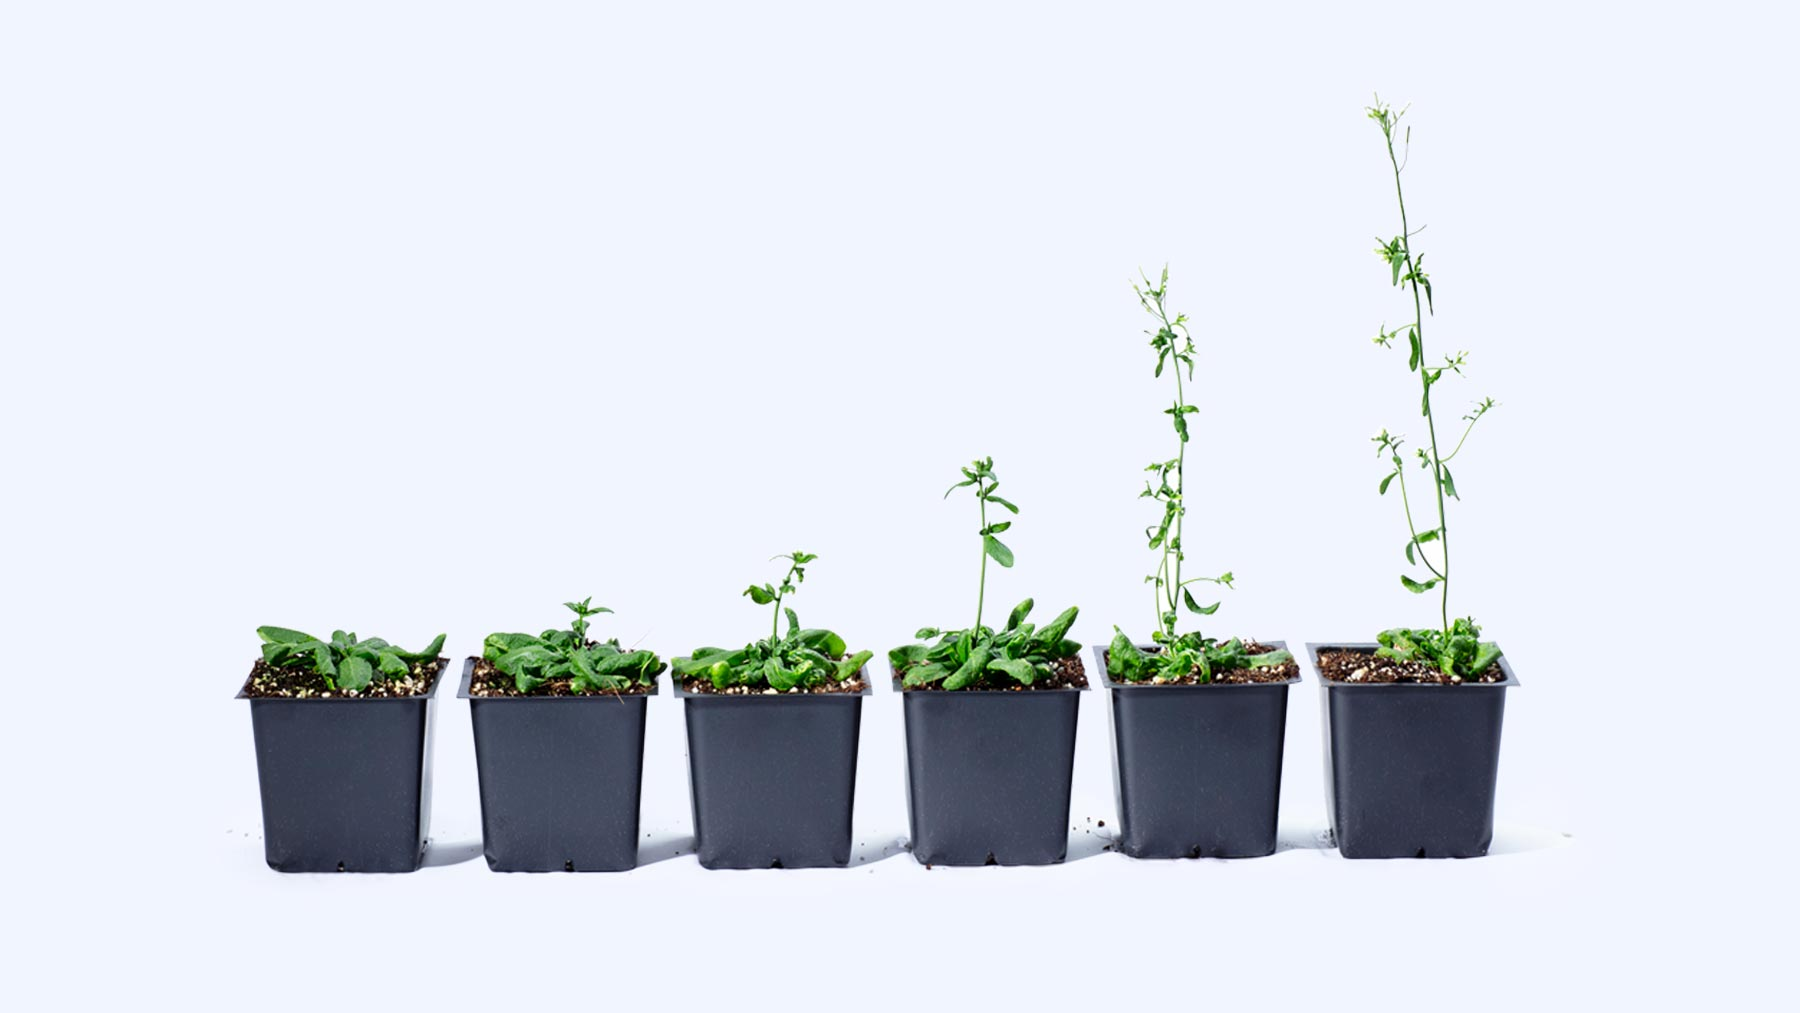 Arabidopsis plants lined up at different stages of growth.